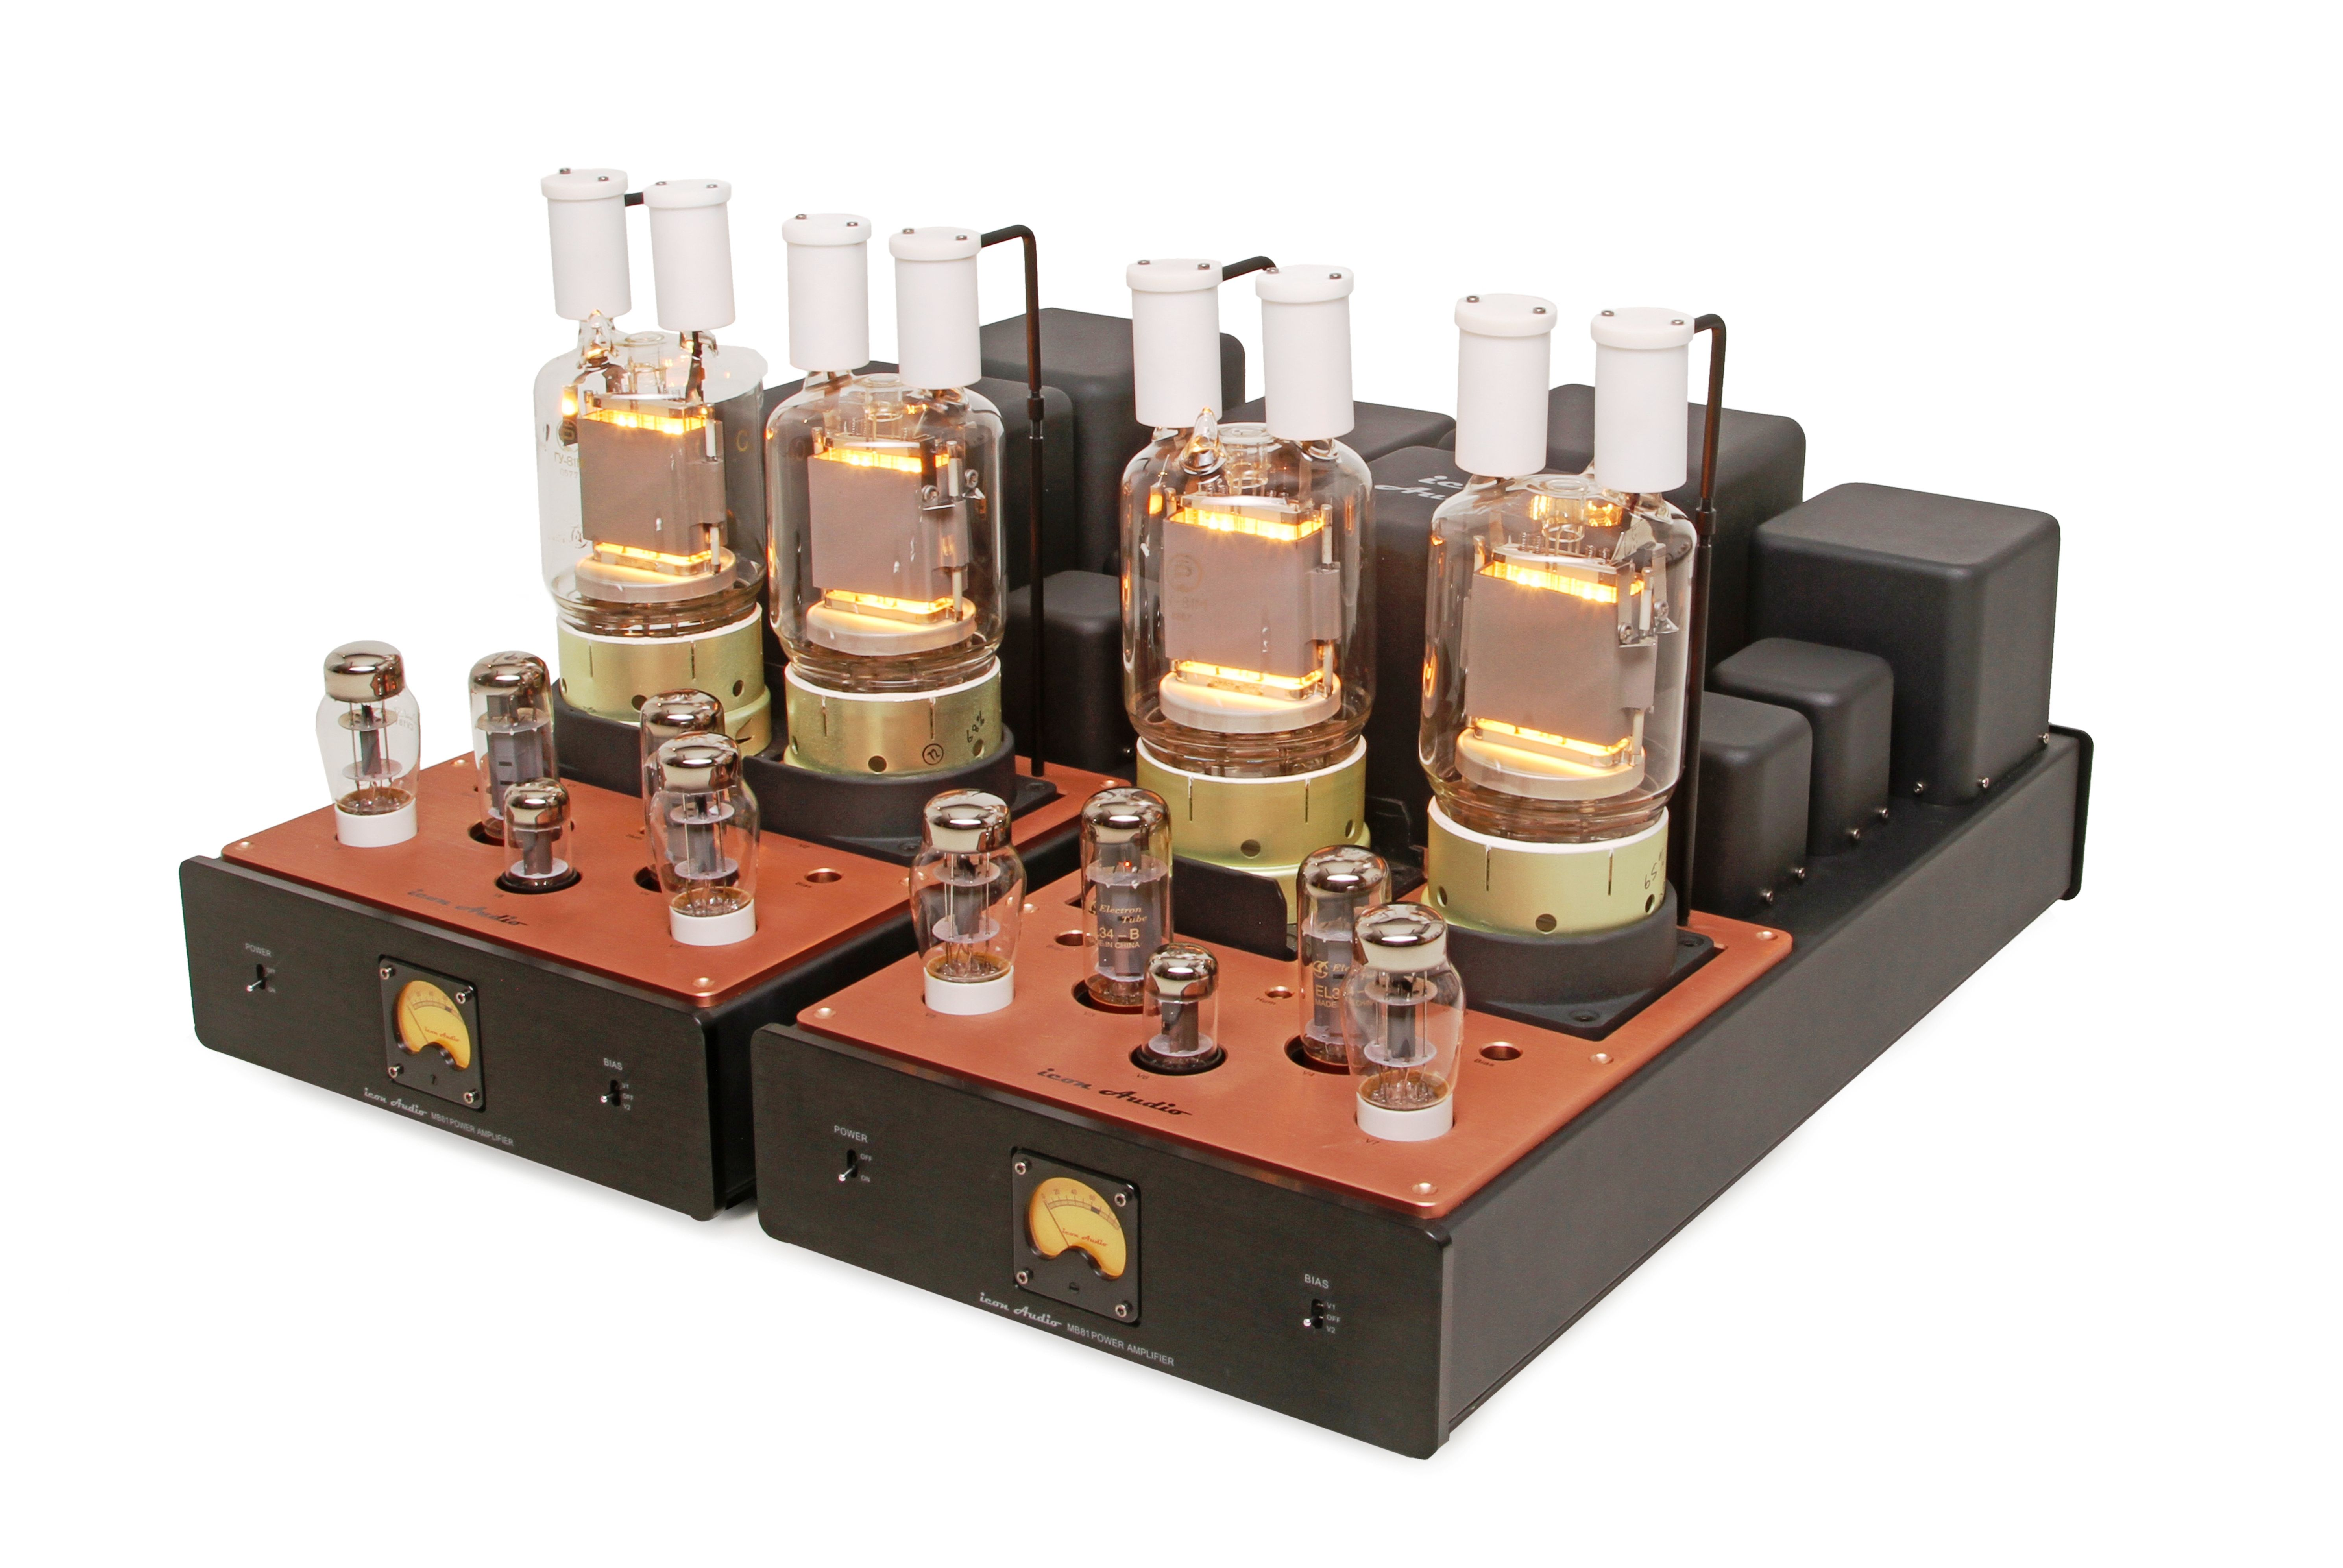 Icon Audio Handmade High End Valve Amplifiers Valve Amplifier Power Amplifiers Audio